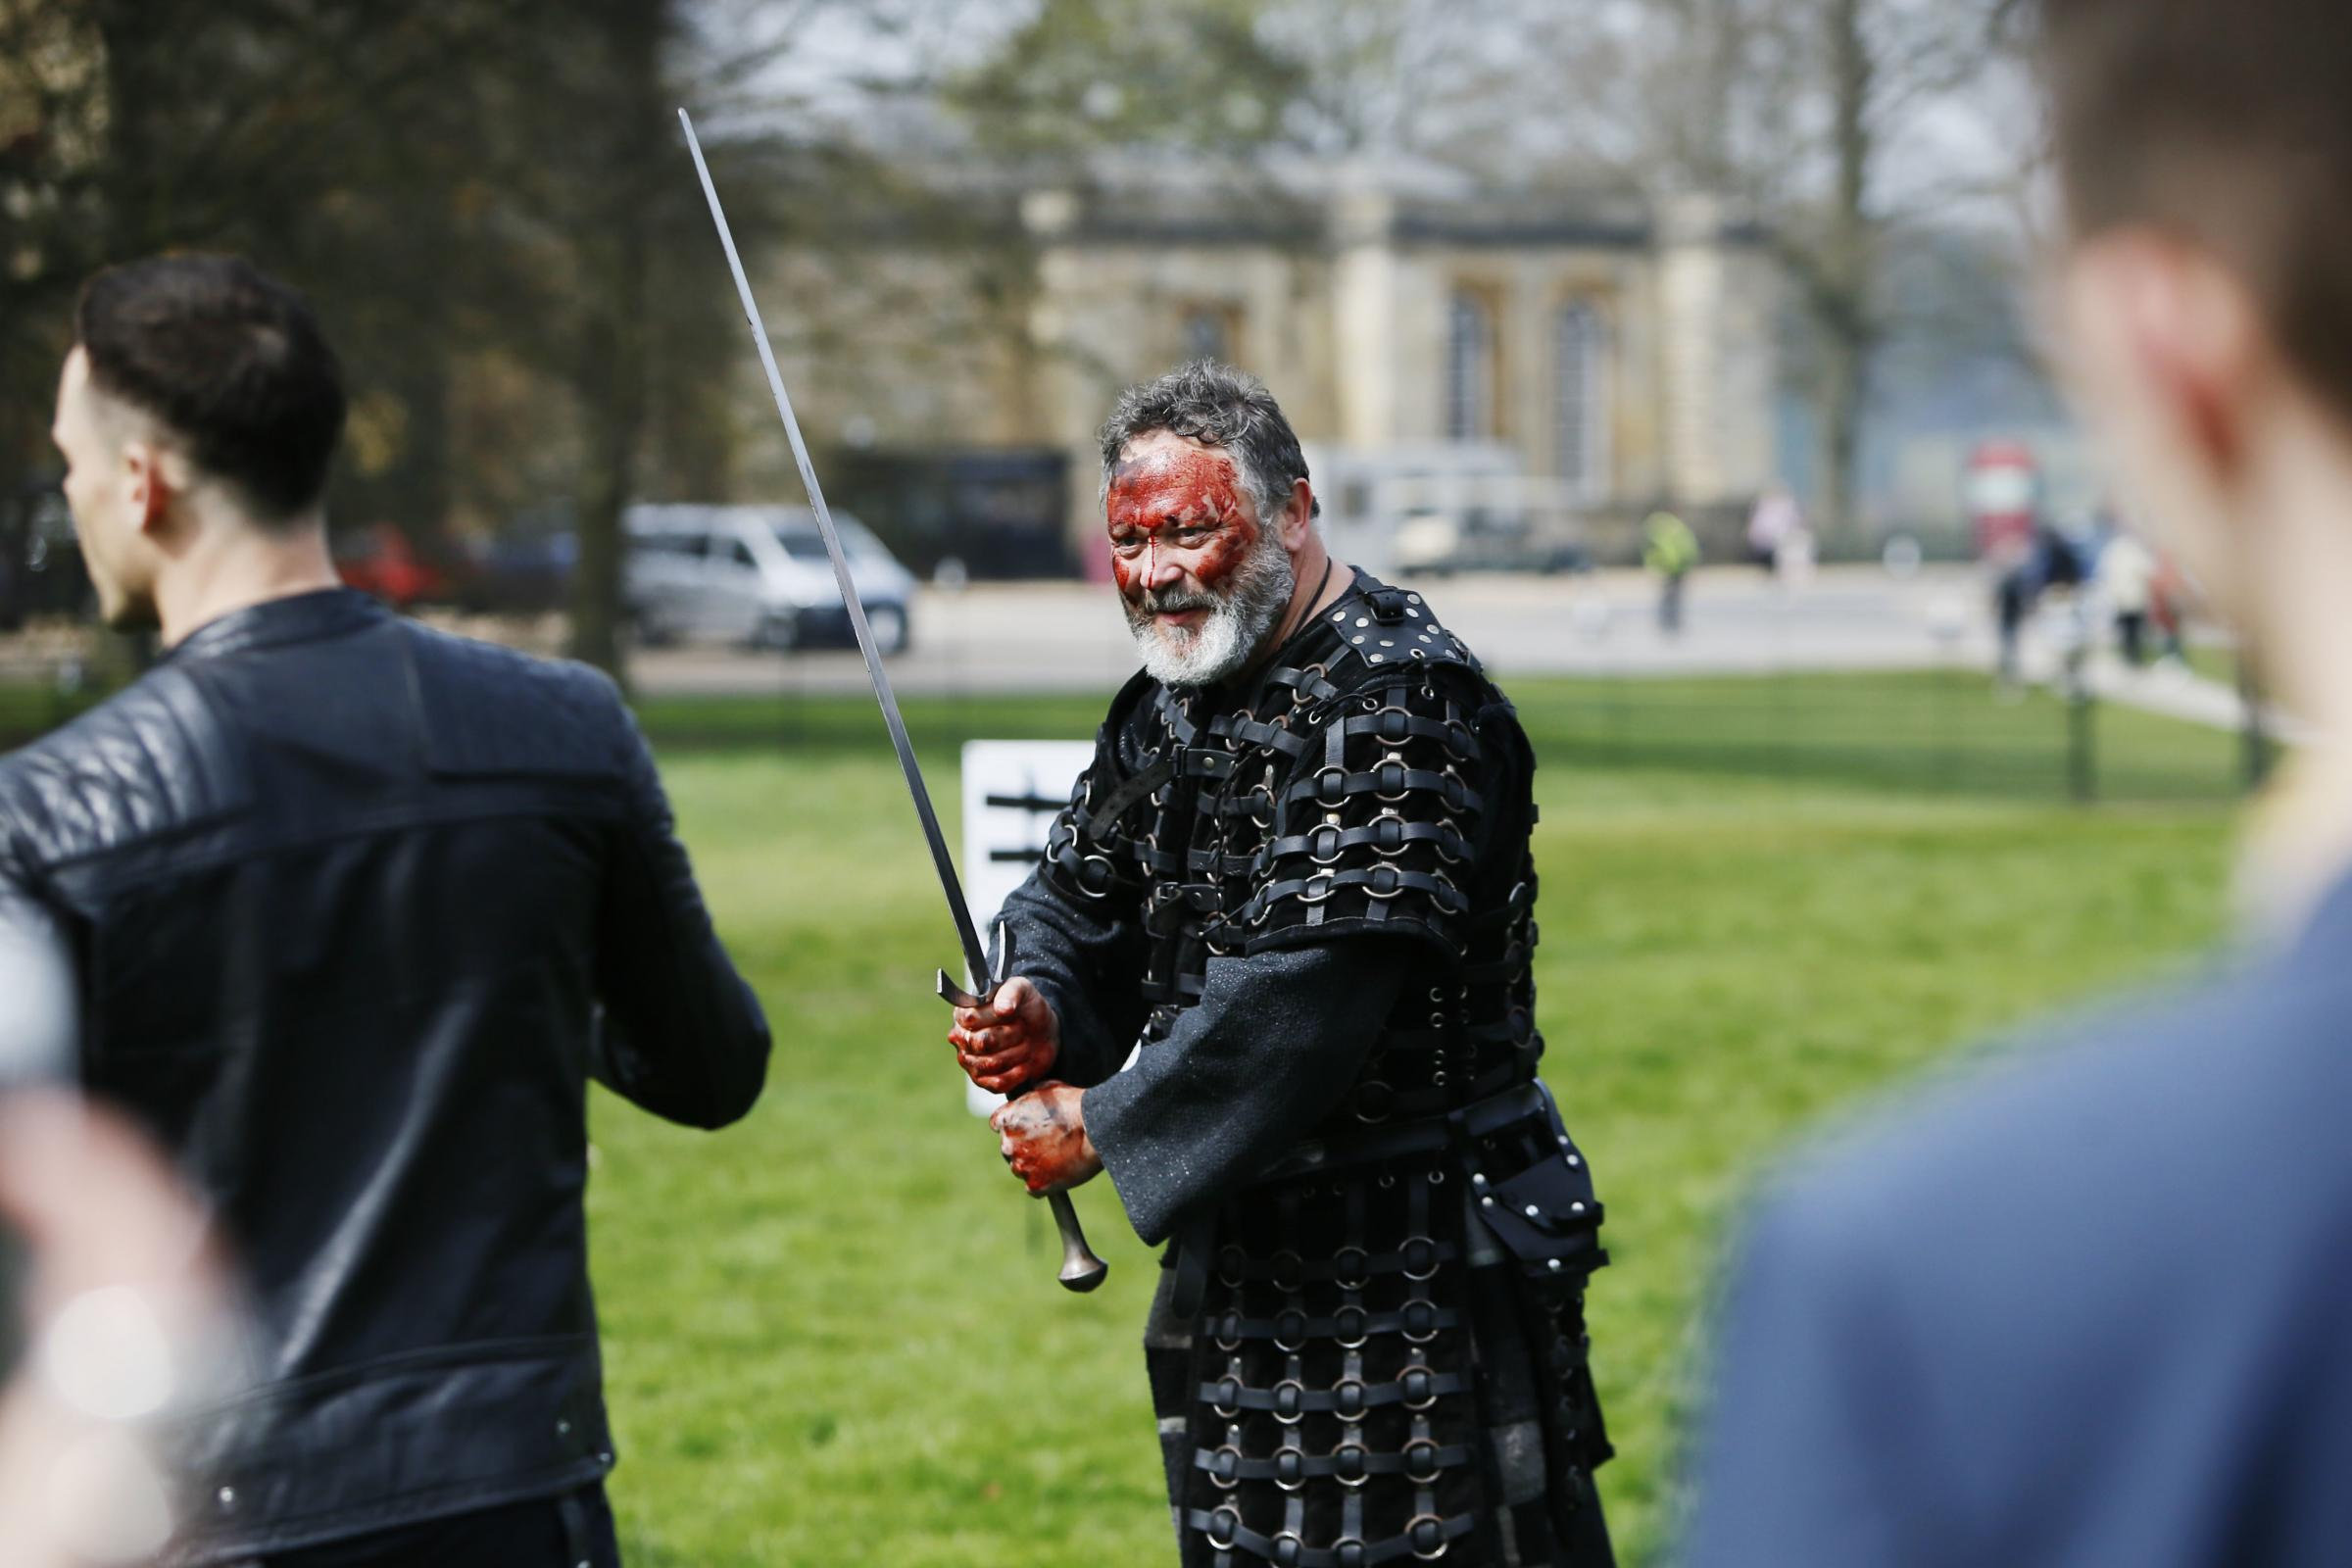 Blenheim Palace announces more details about its Shakespearean style theatre